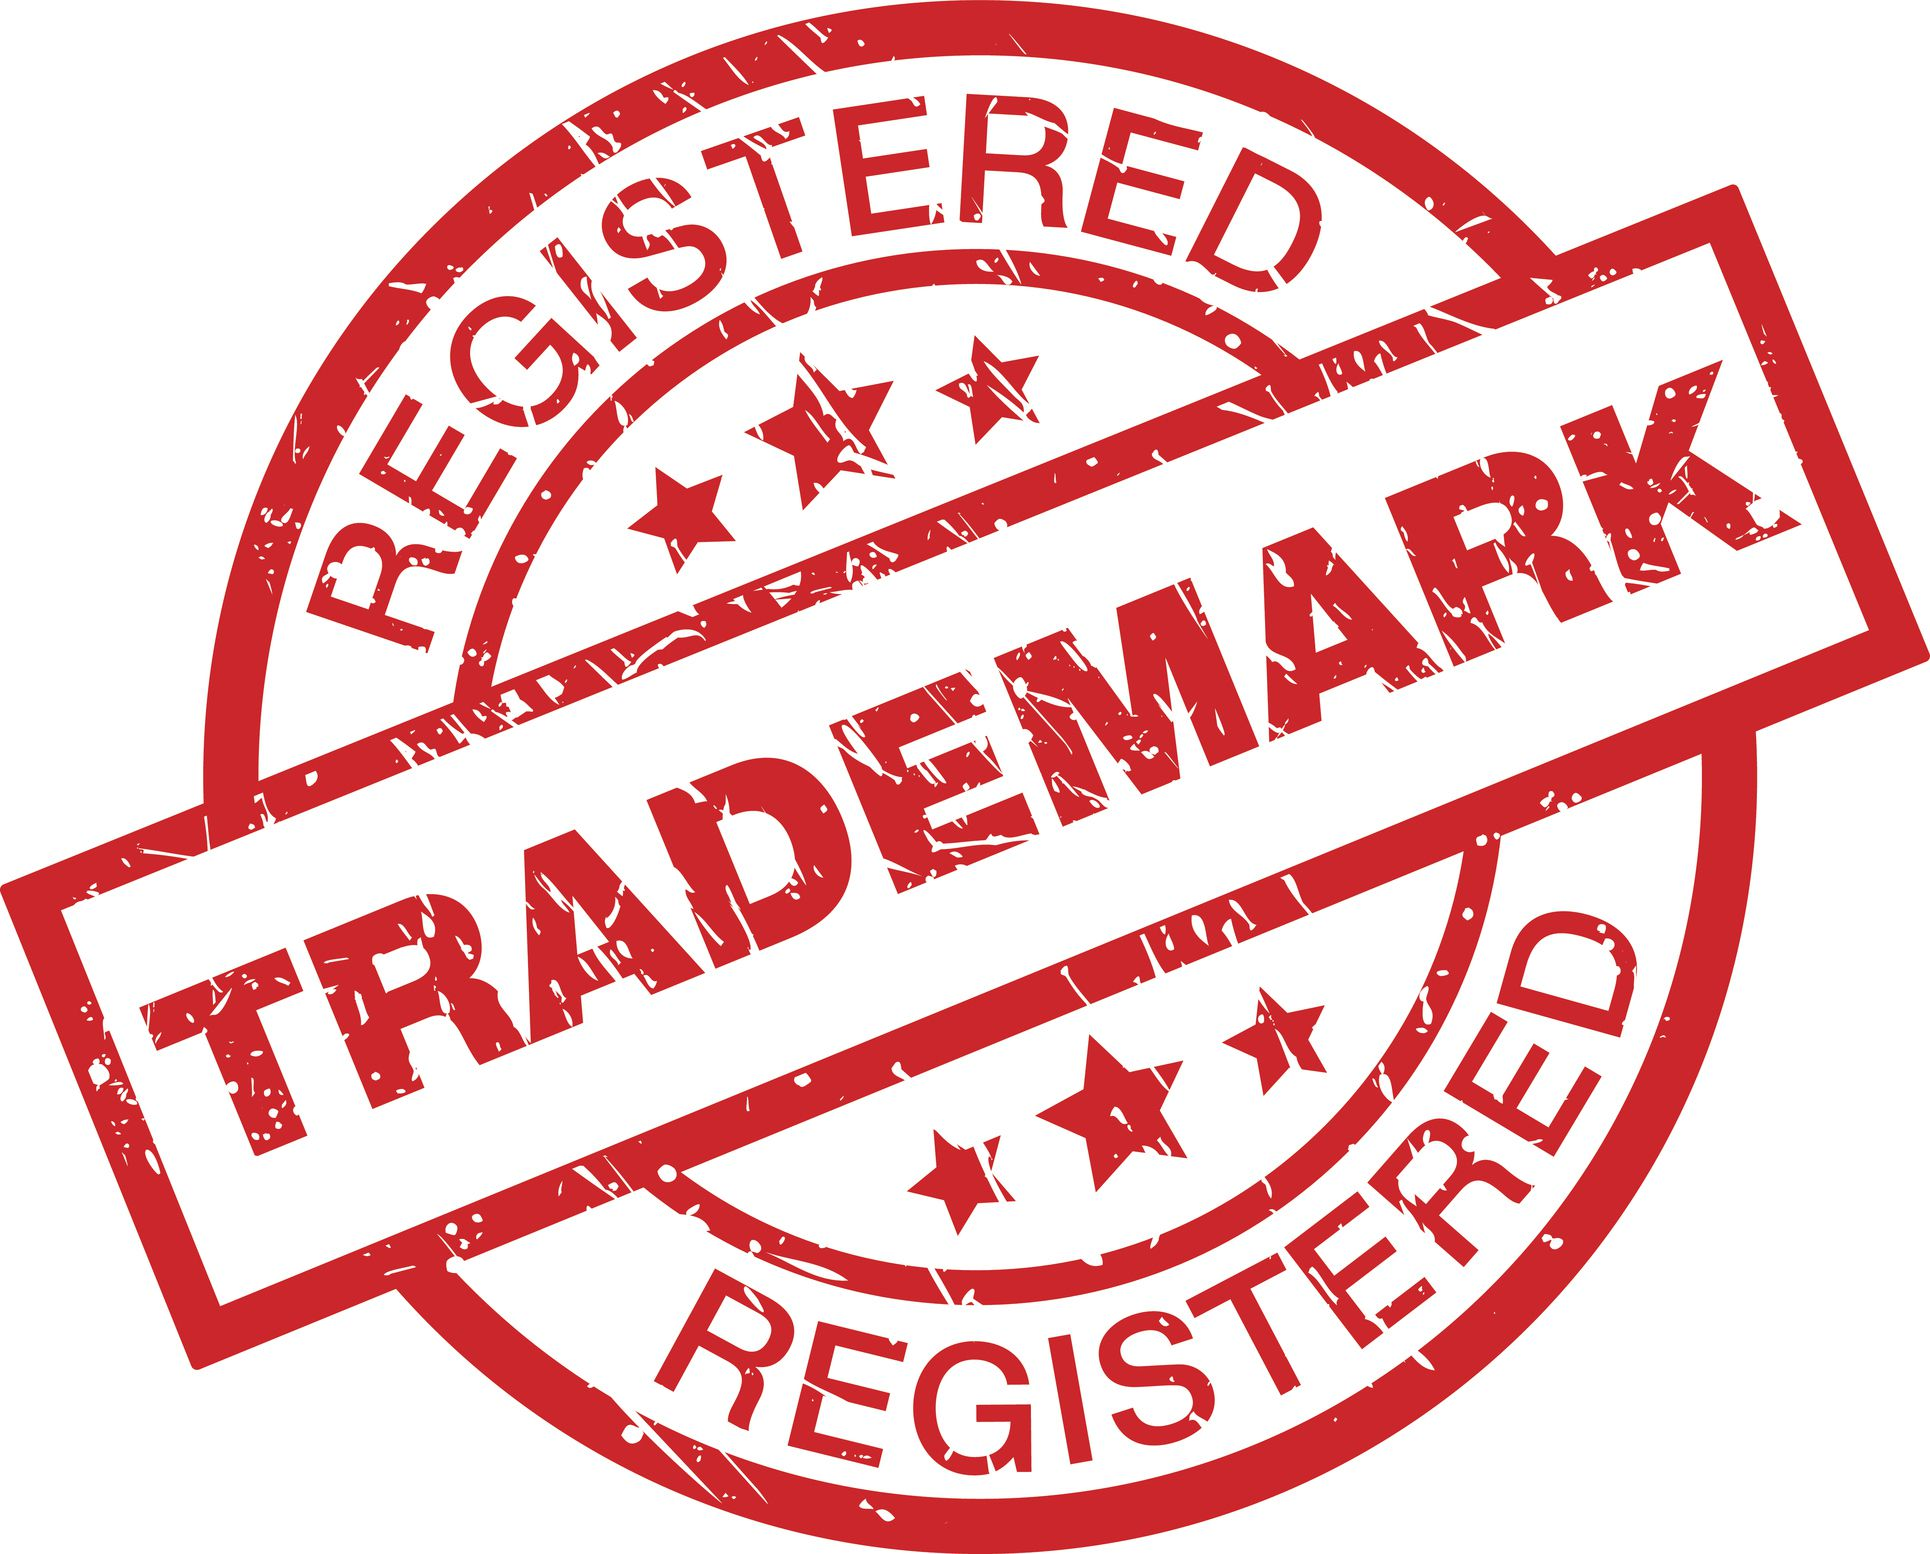 Trademark : How to register and process to change the ownership.